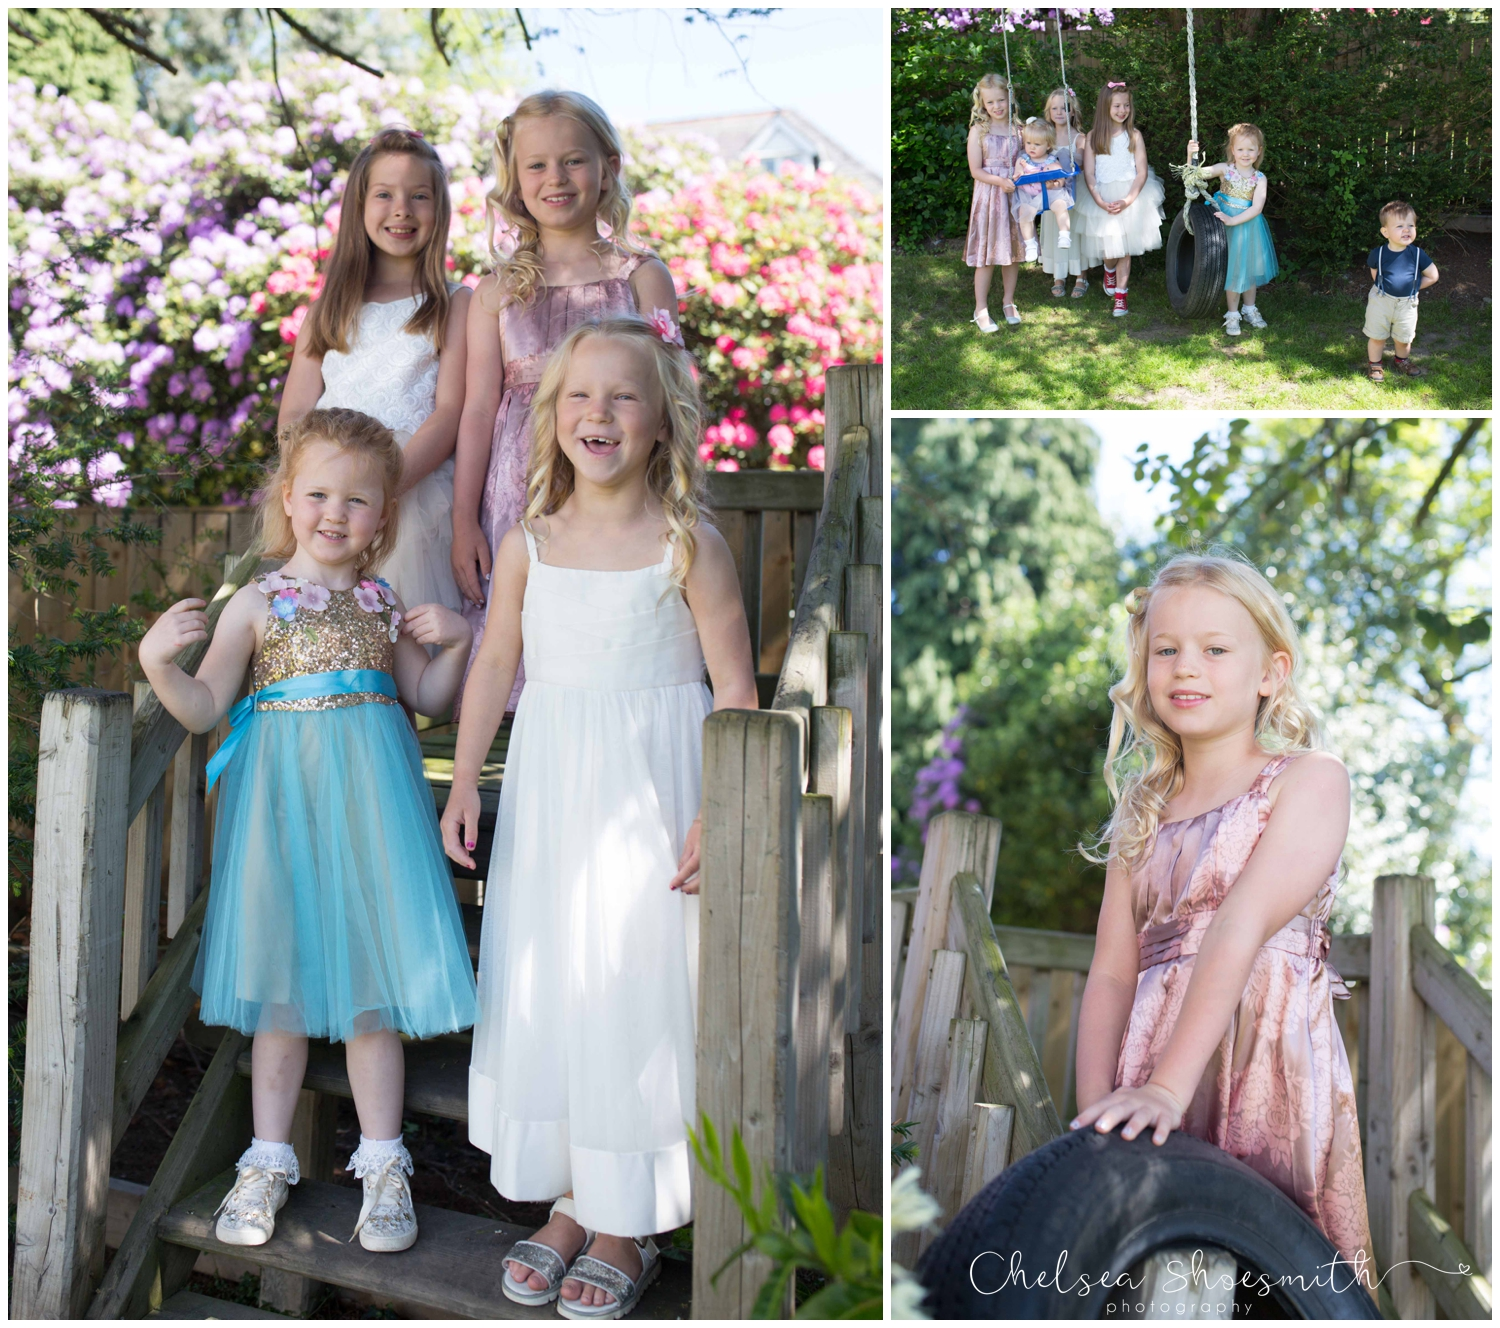 (98 of 125) Louise Roberts Family Portrait Wilmslow Chelsea Shoesmith Photography_